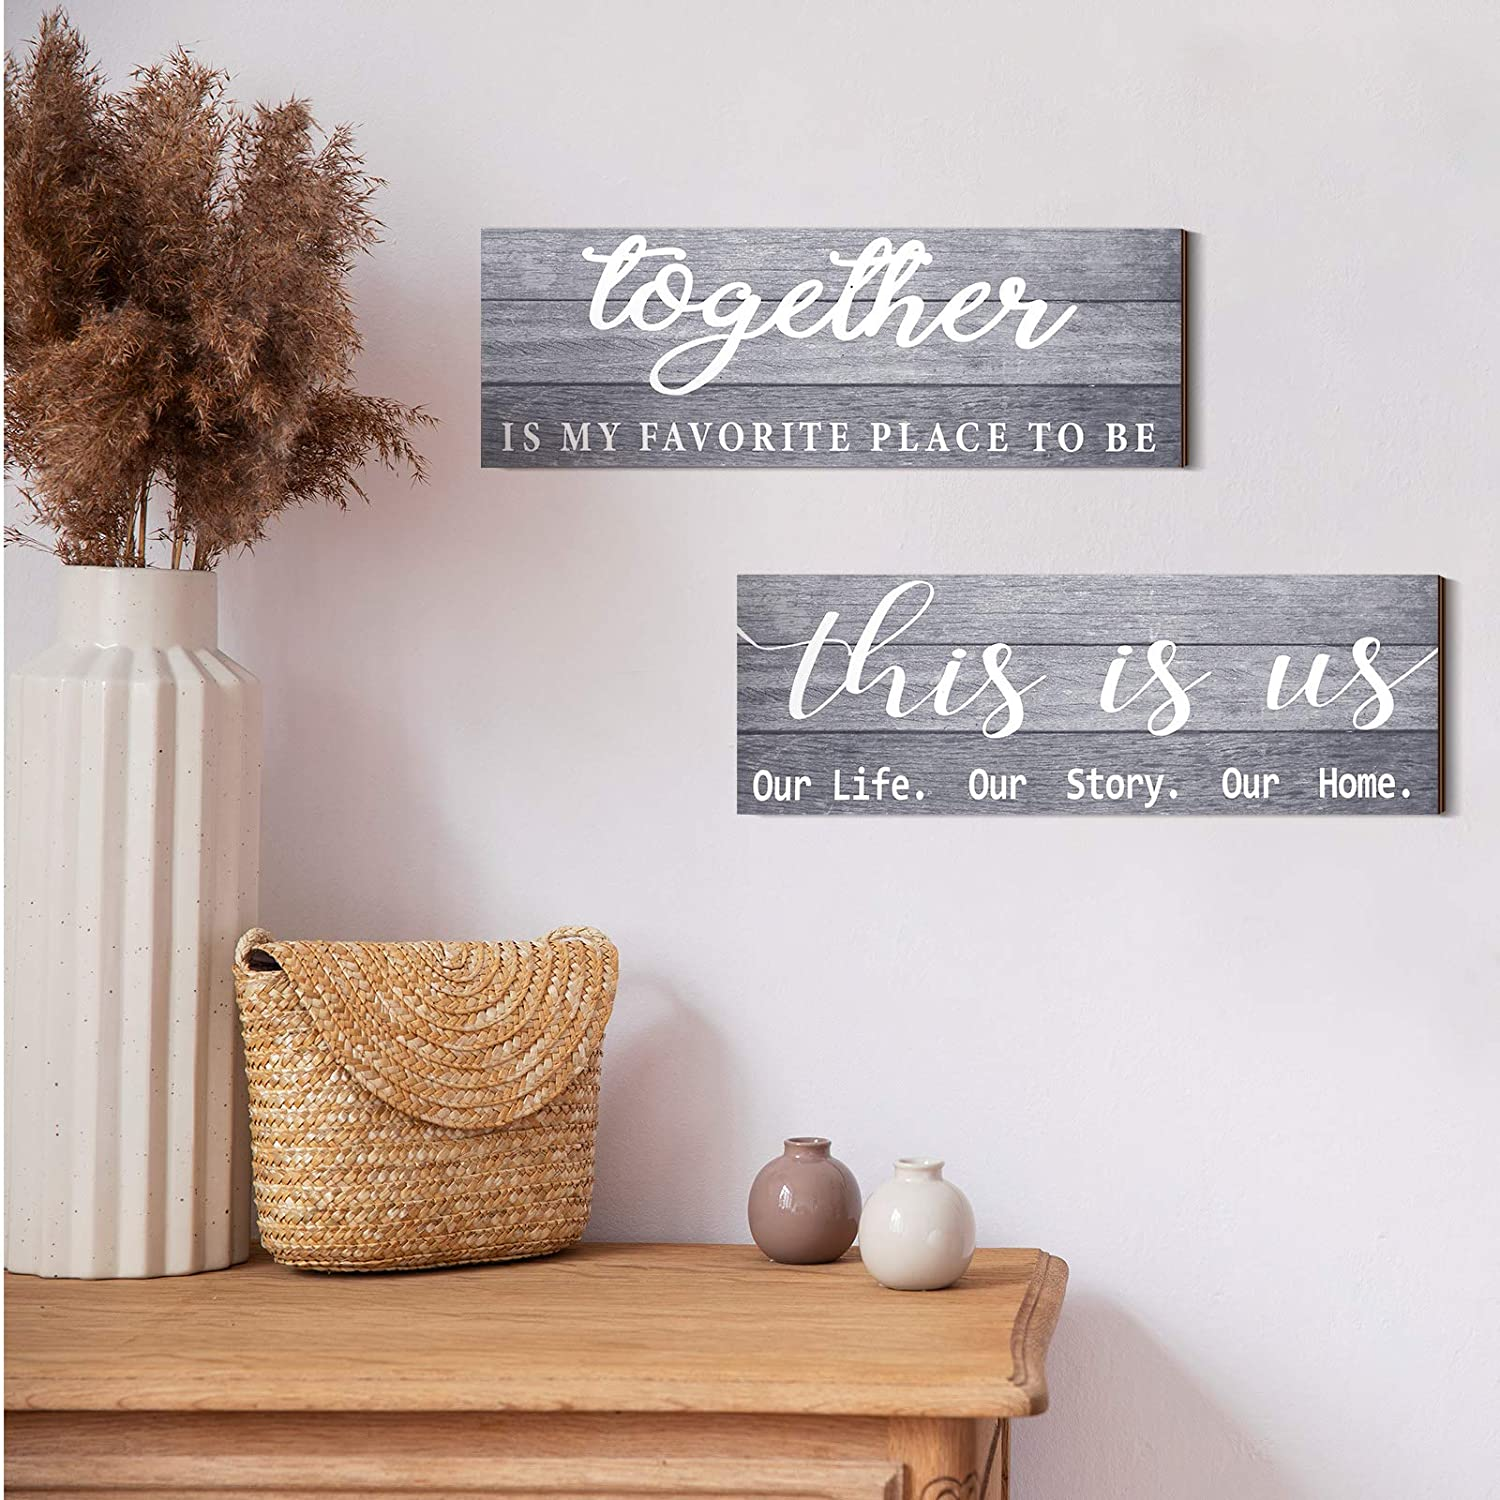 Jetec 2 Pieces This is Us Our Life Our Story Rustic Print Wood Signs Together Rustic Wooden Wall Art Signs Farmhouse Entryway Signs for Bedroom Living Room Office Decor, 4.7 x 13.8 Inch